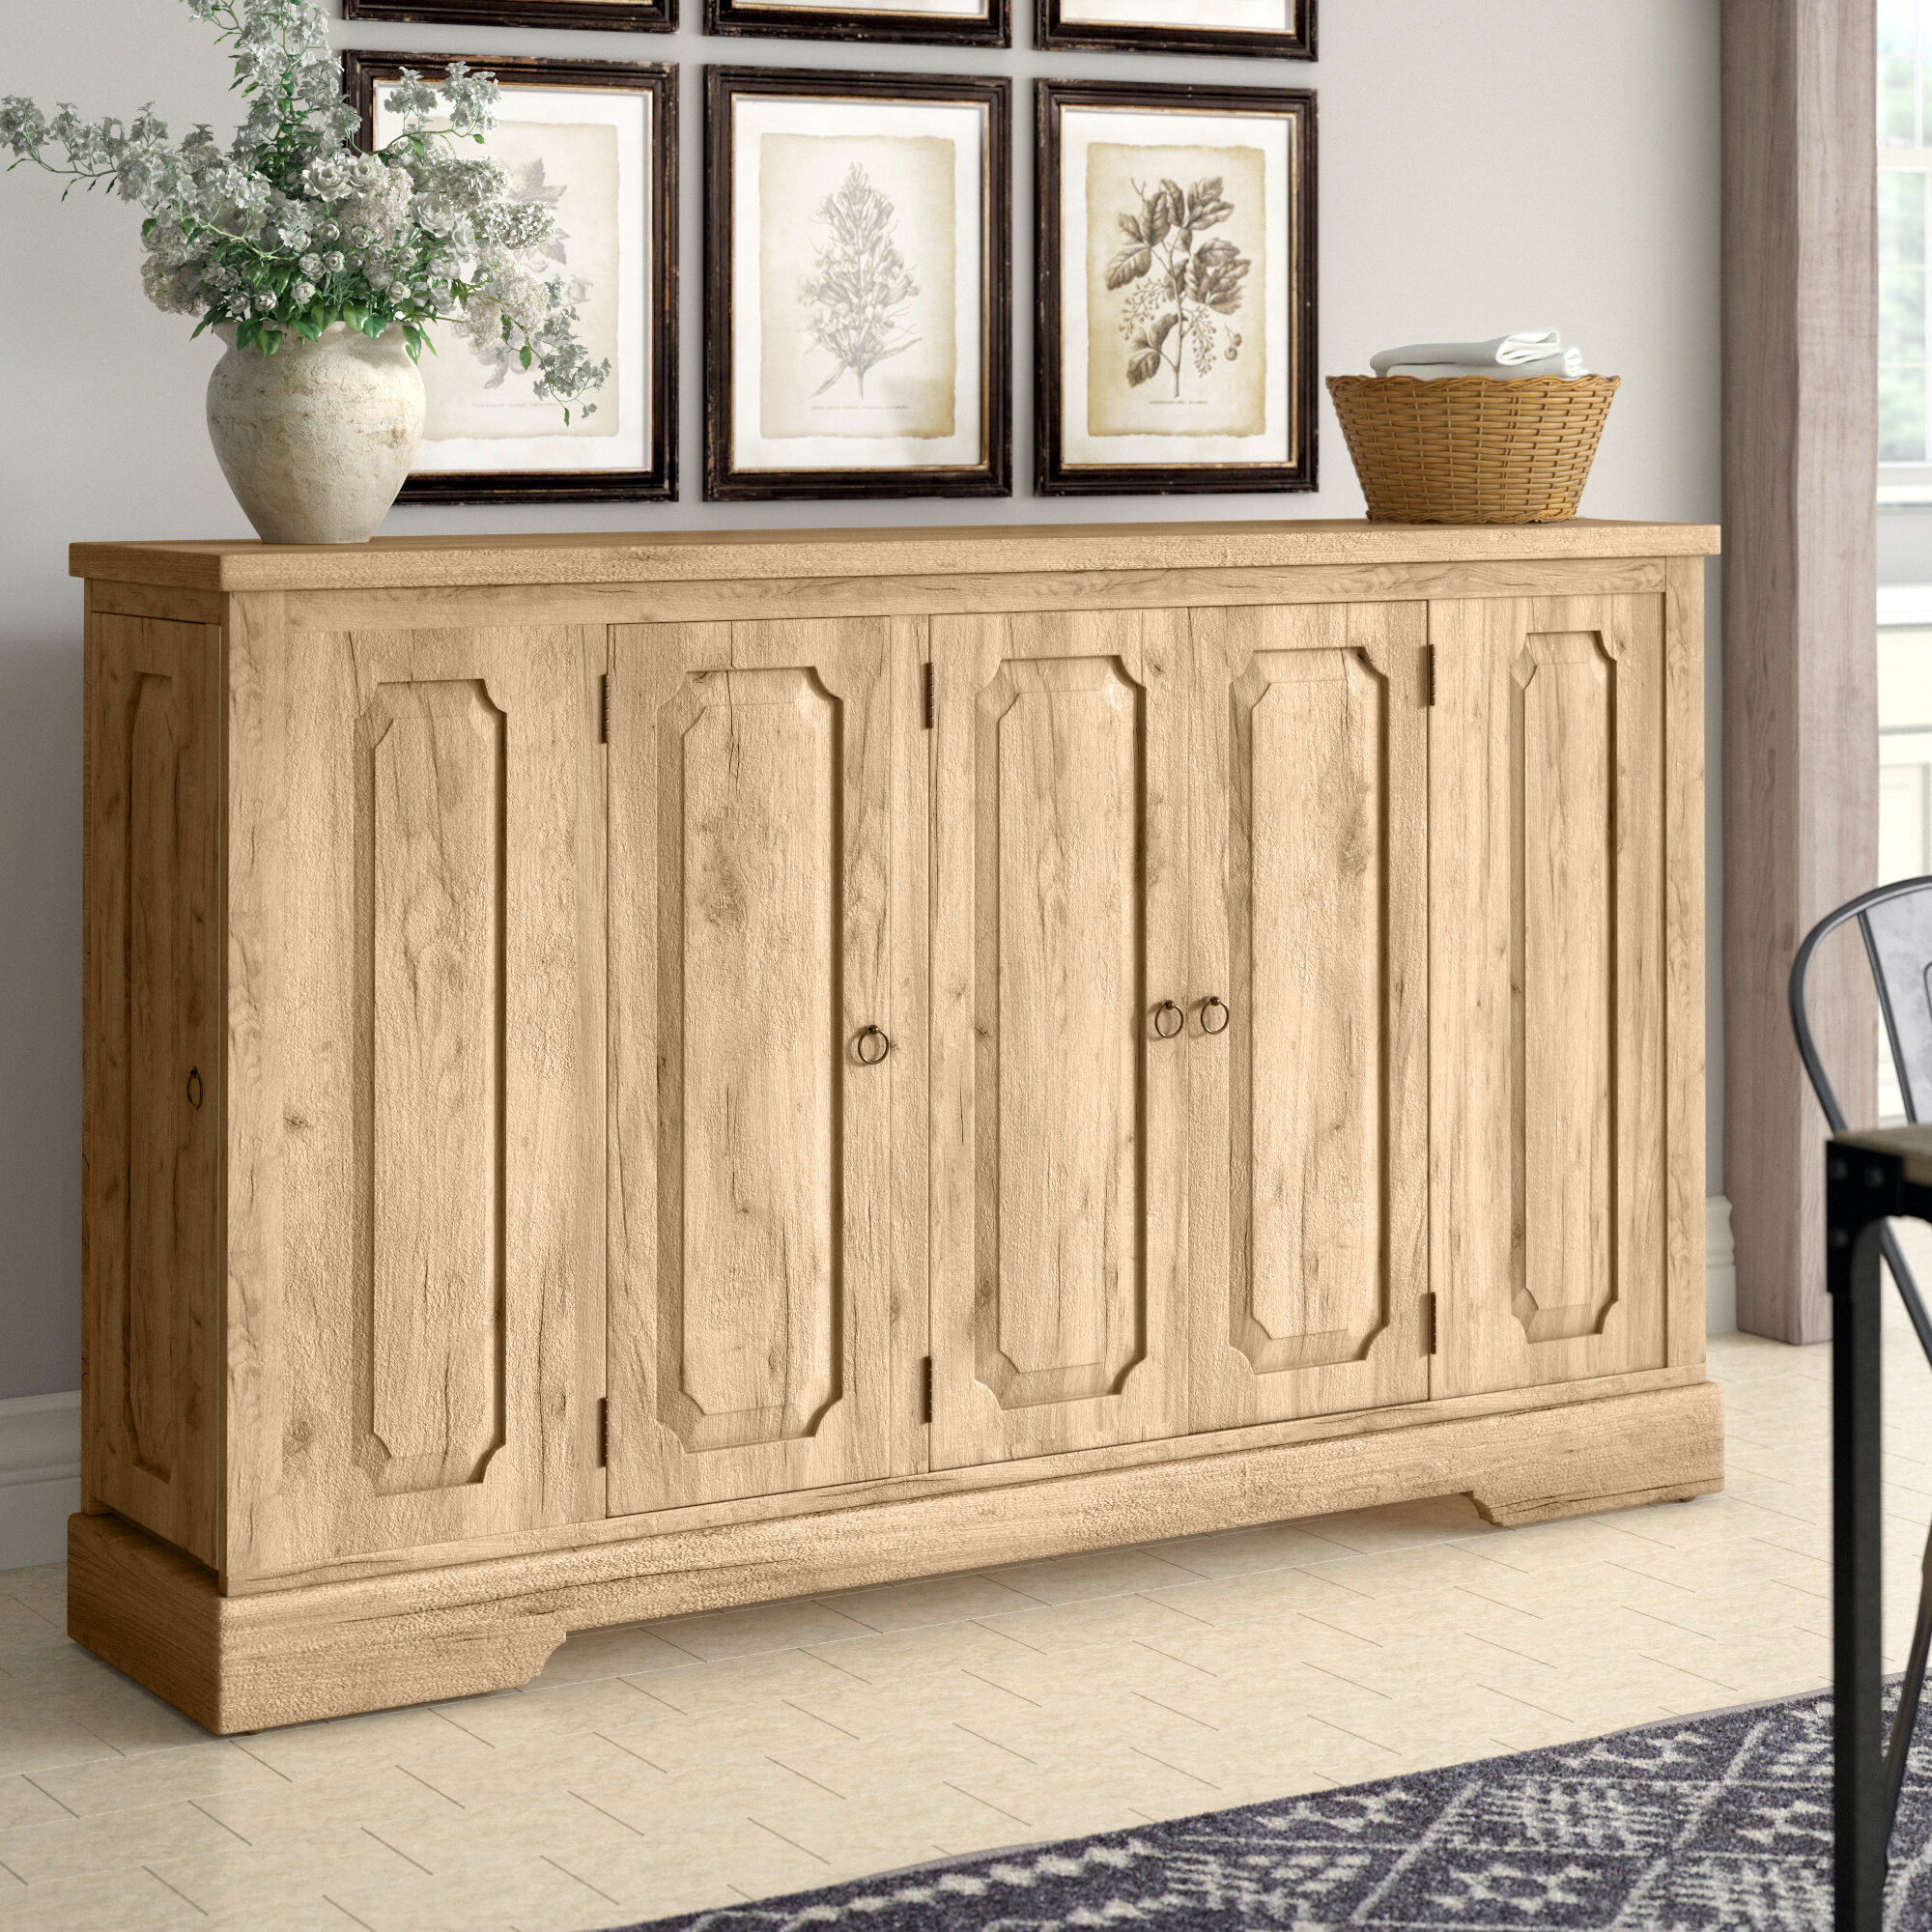 Pannell Sideboard Regarding Solana Sideboards (View 20 of 30)